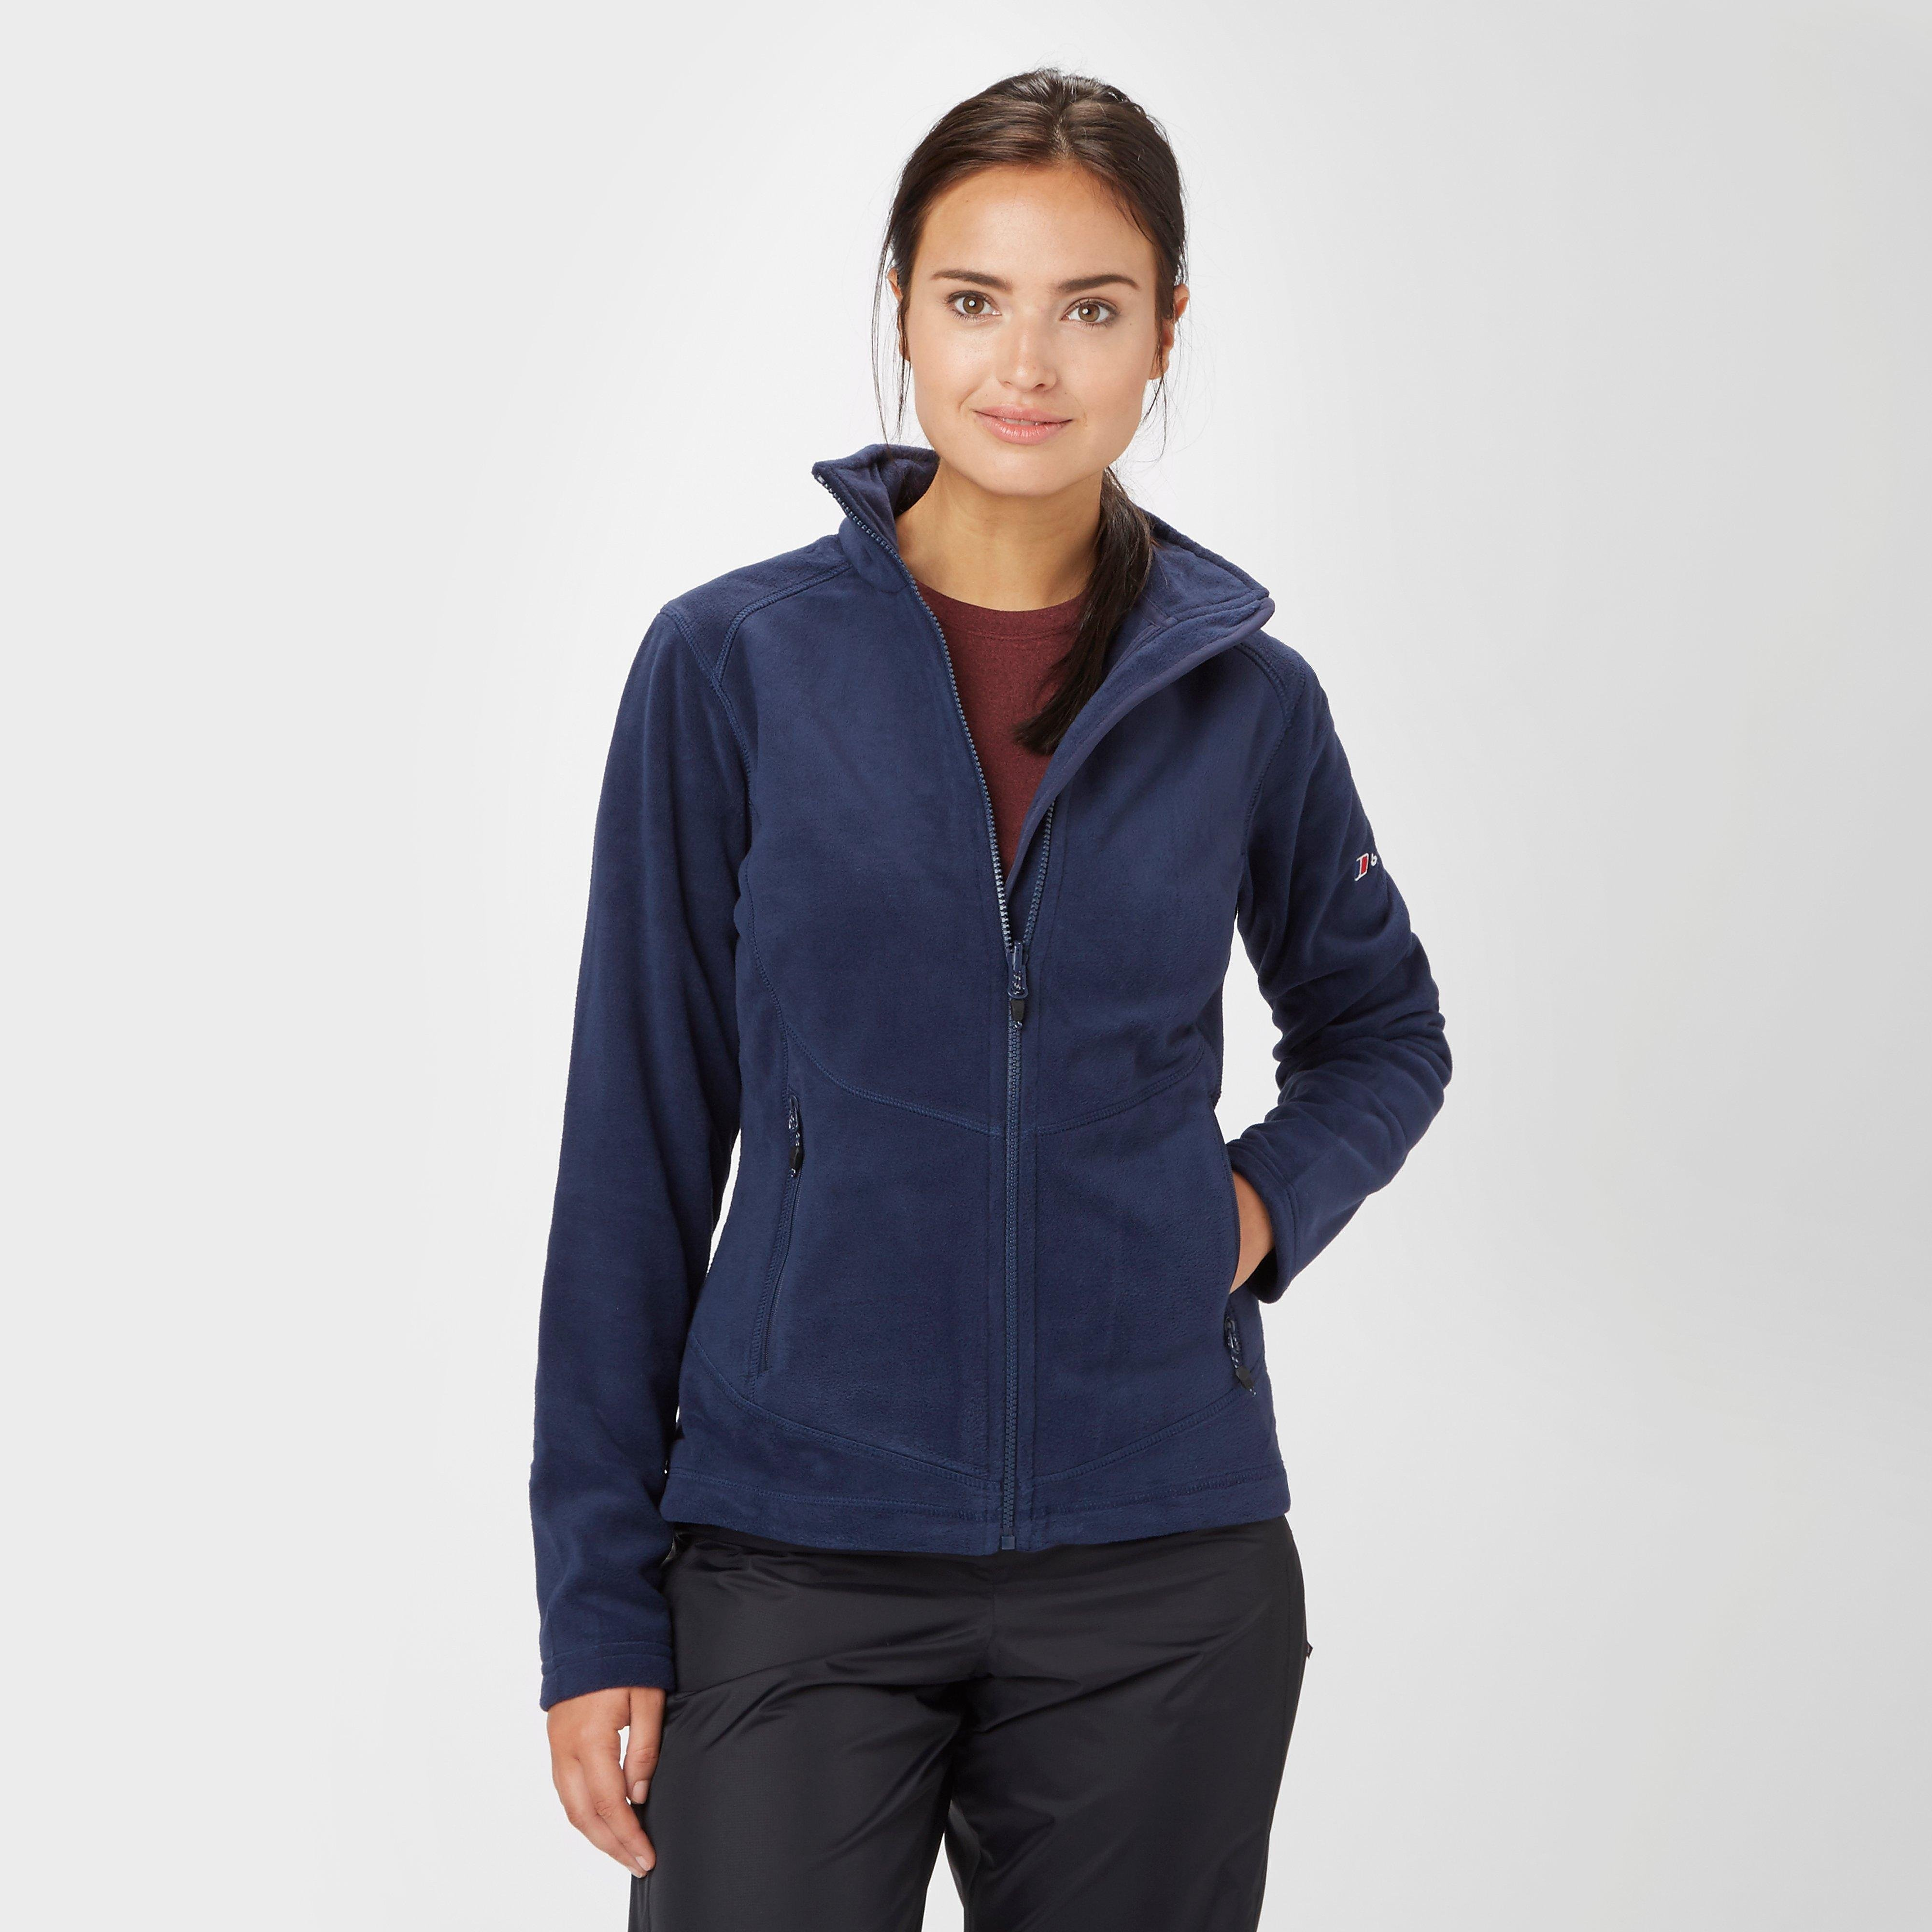 Berghaus Prism II Full-Zip Women's Micro Fleece